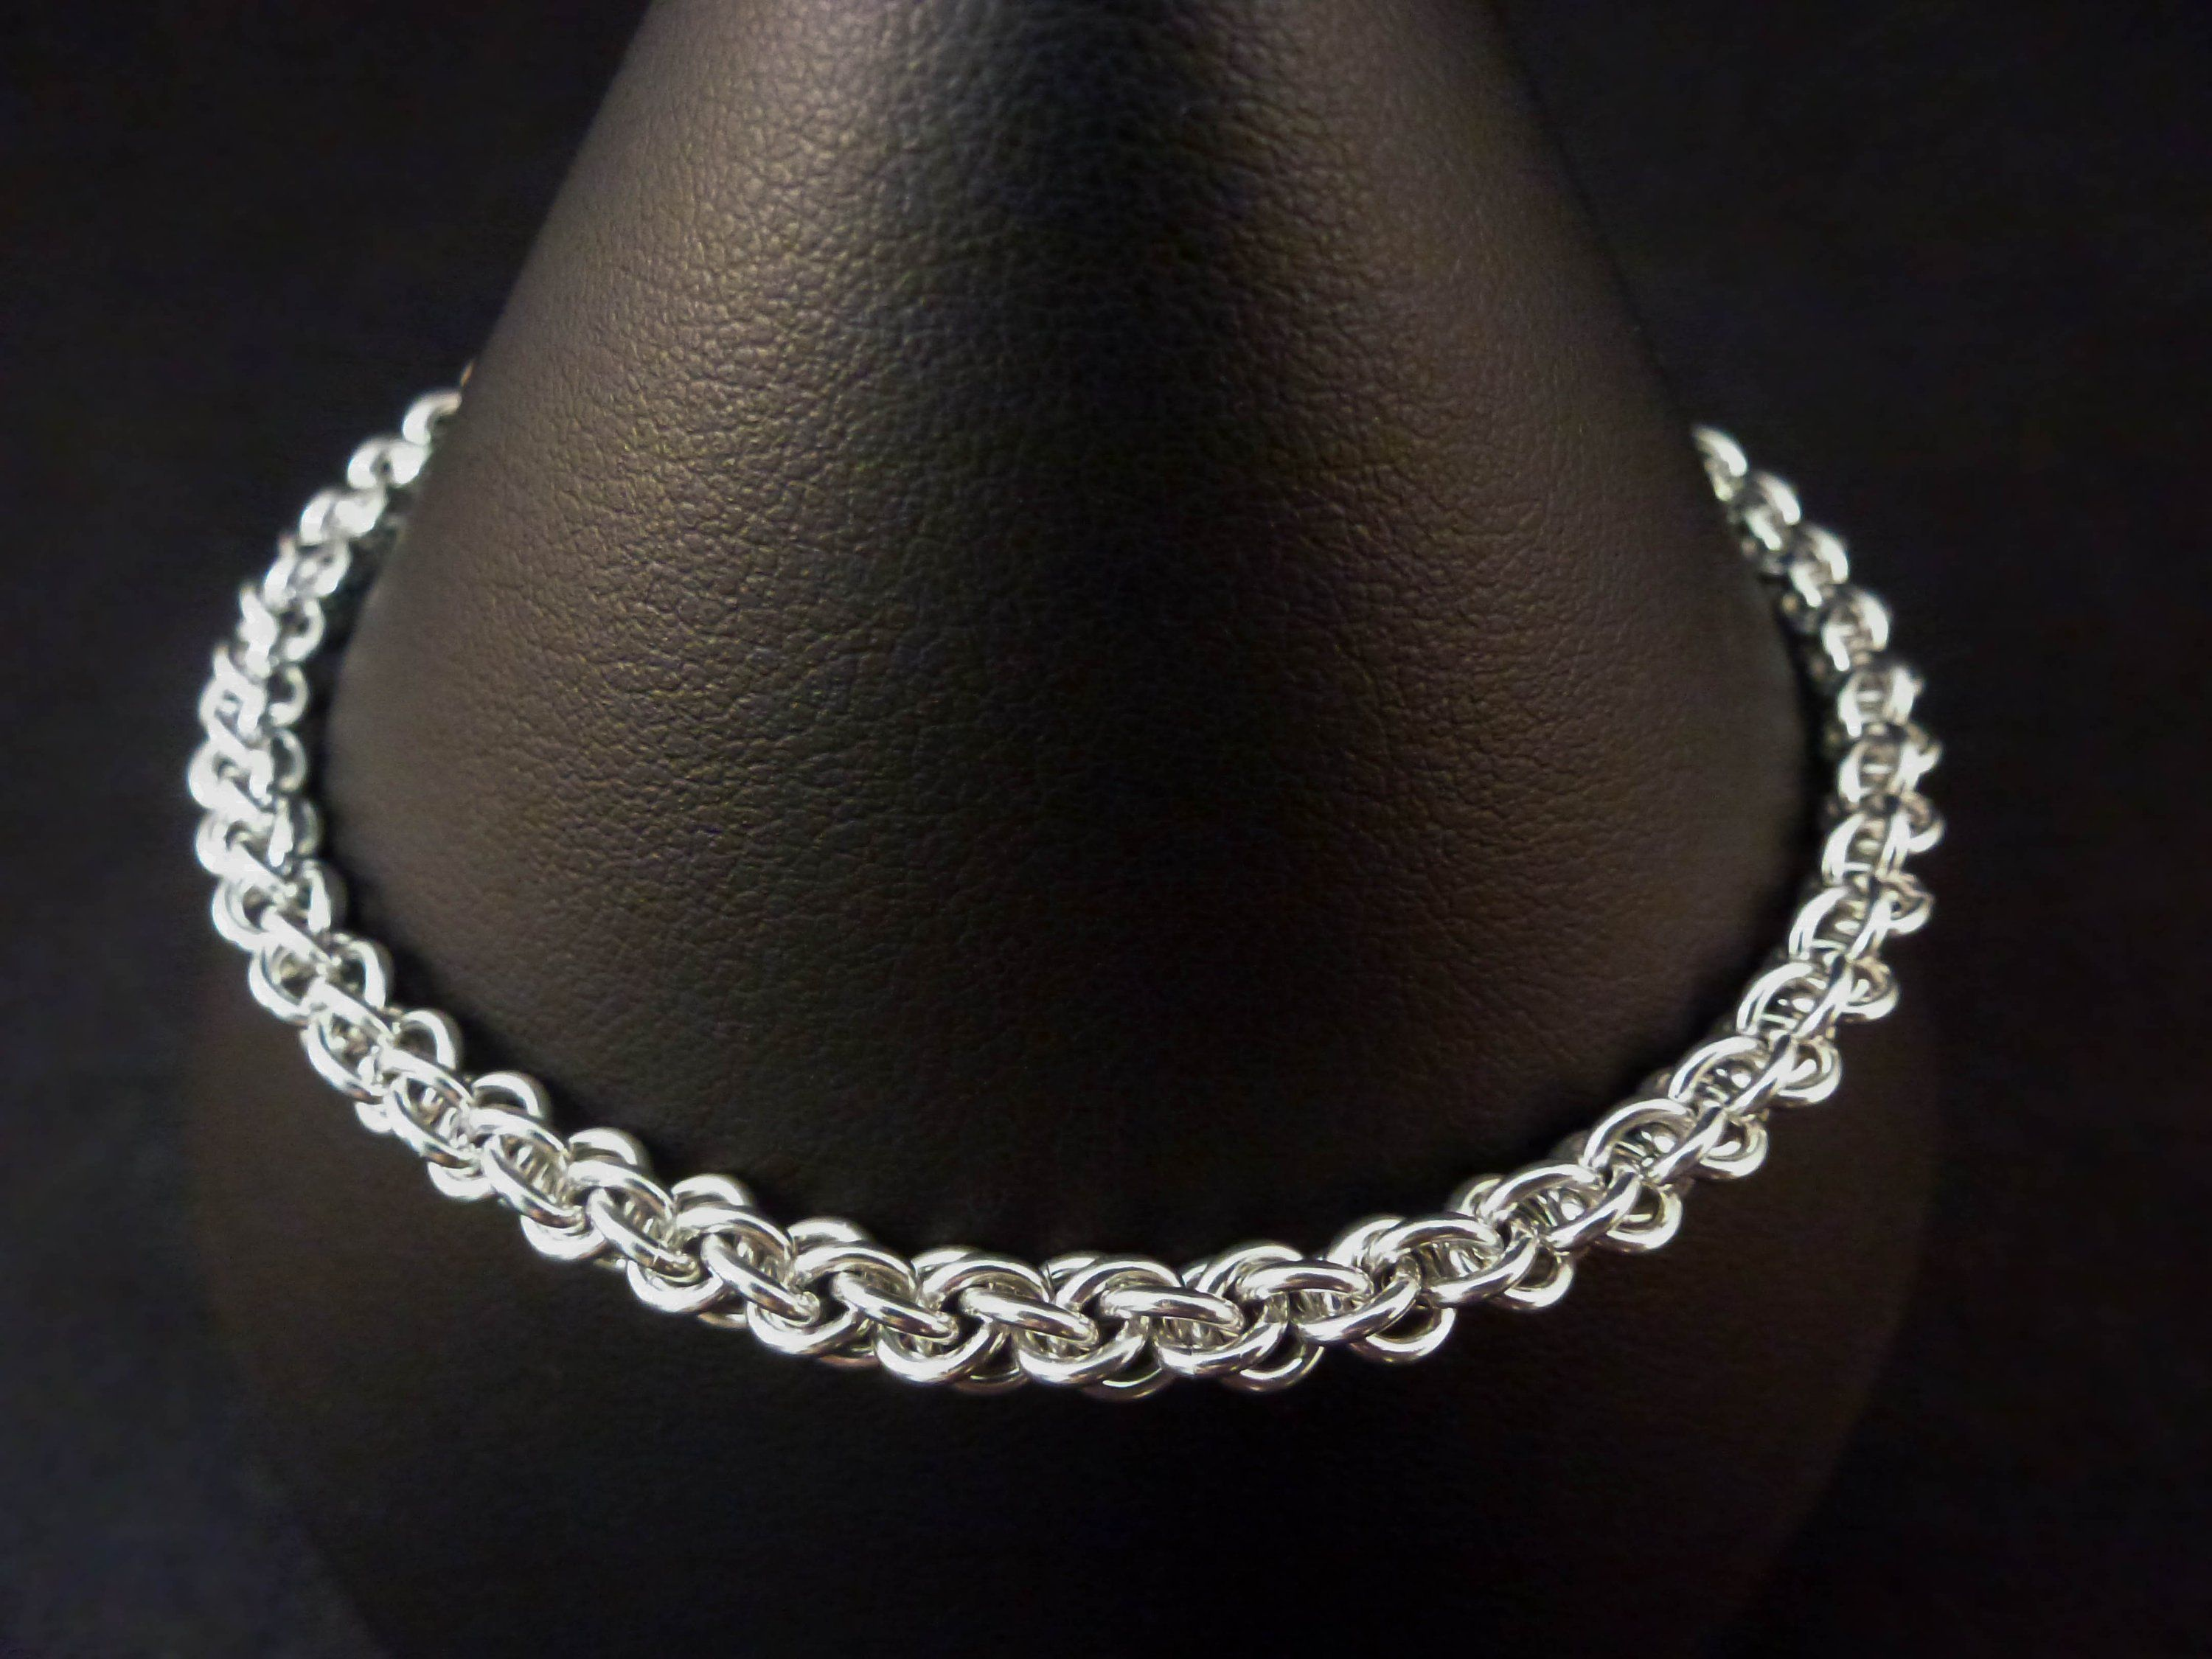 Jens Pind Chainmaille Bracelet Stainless Steel